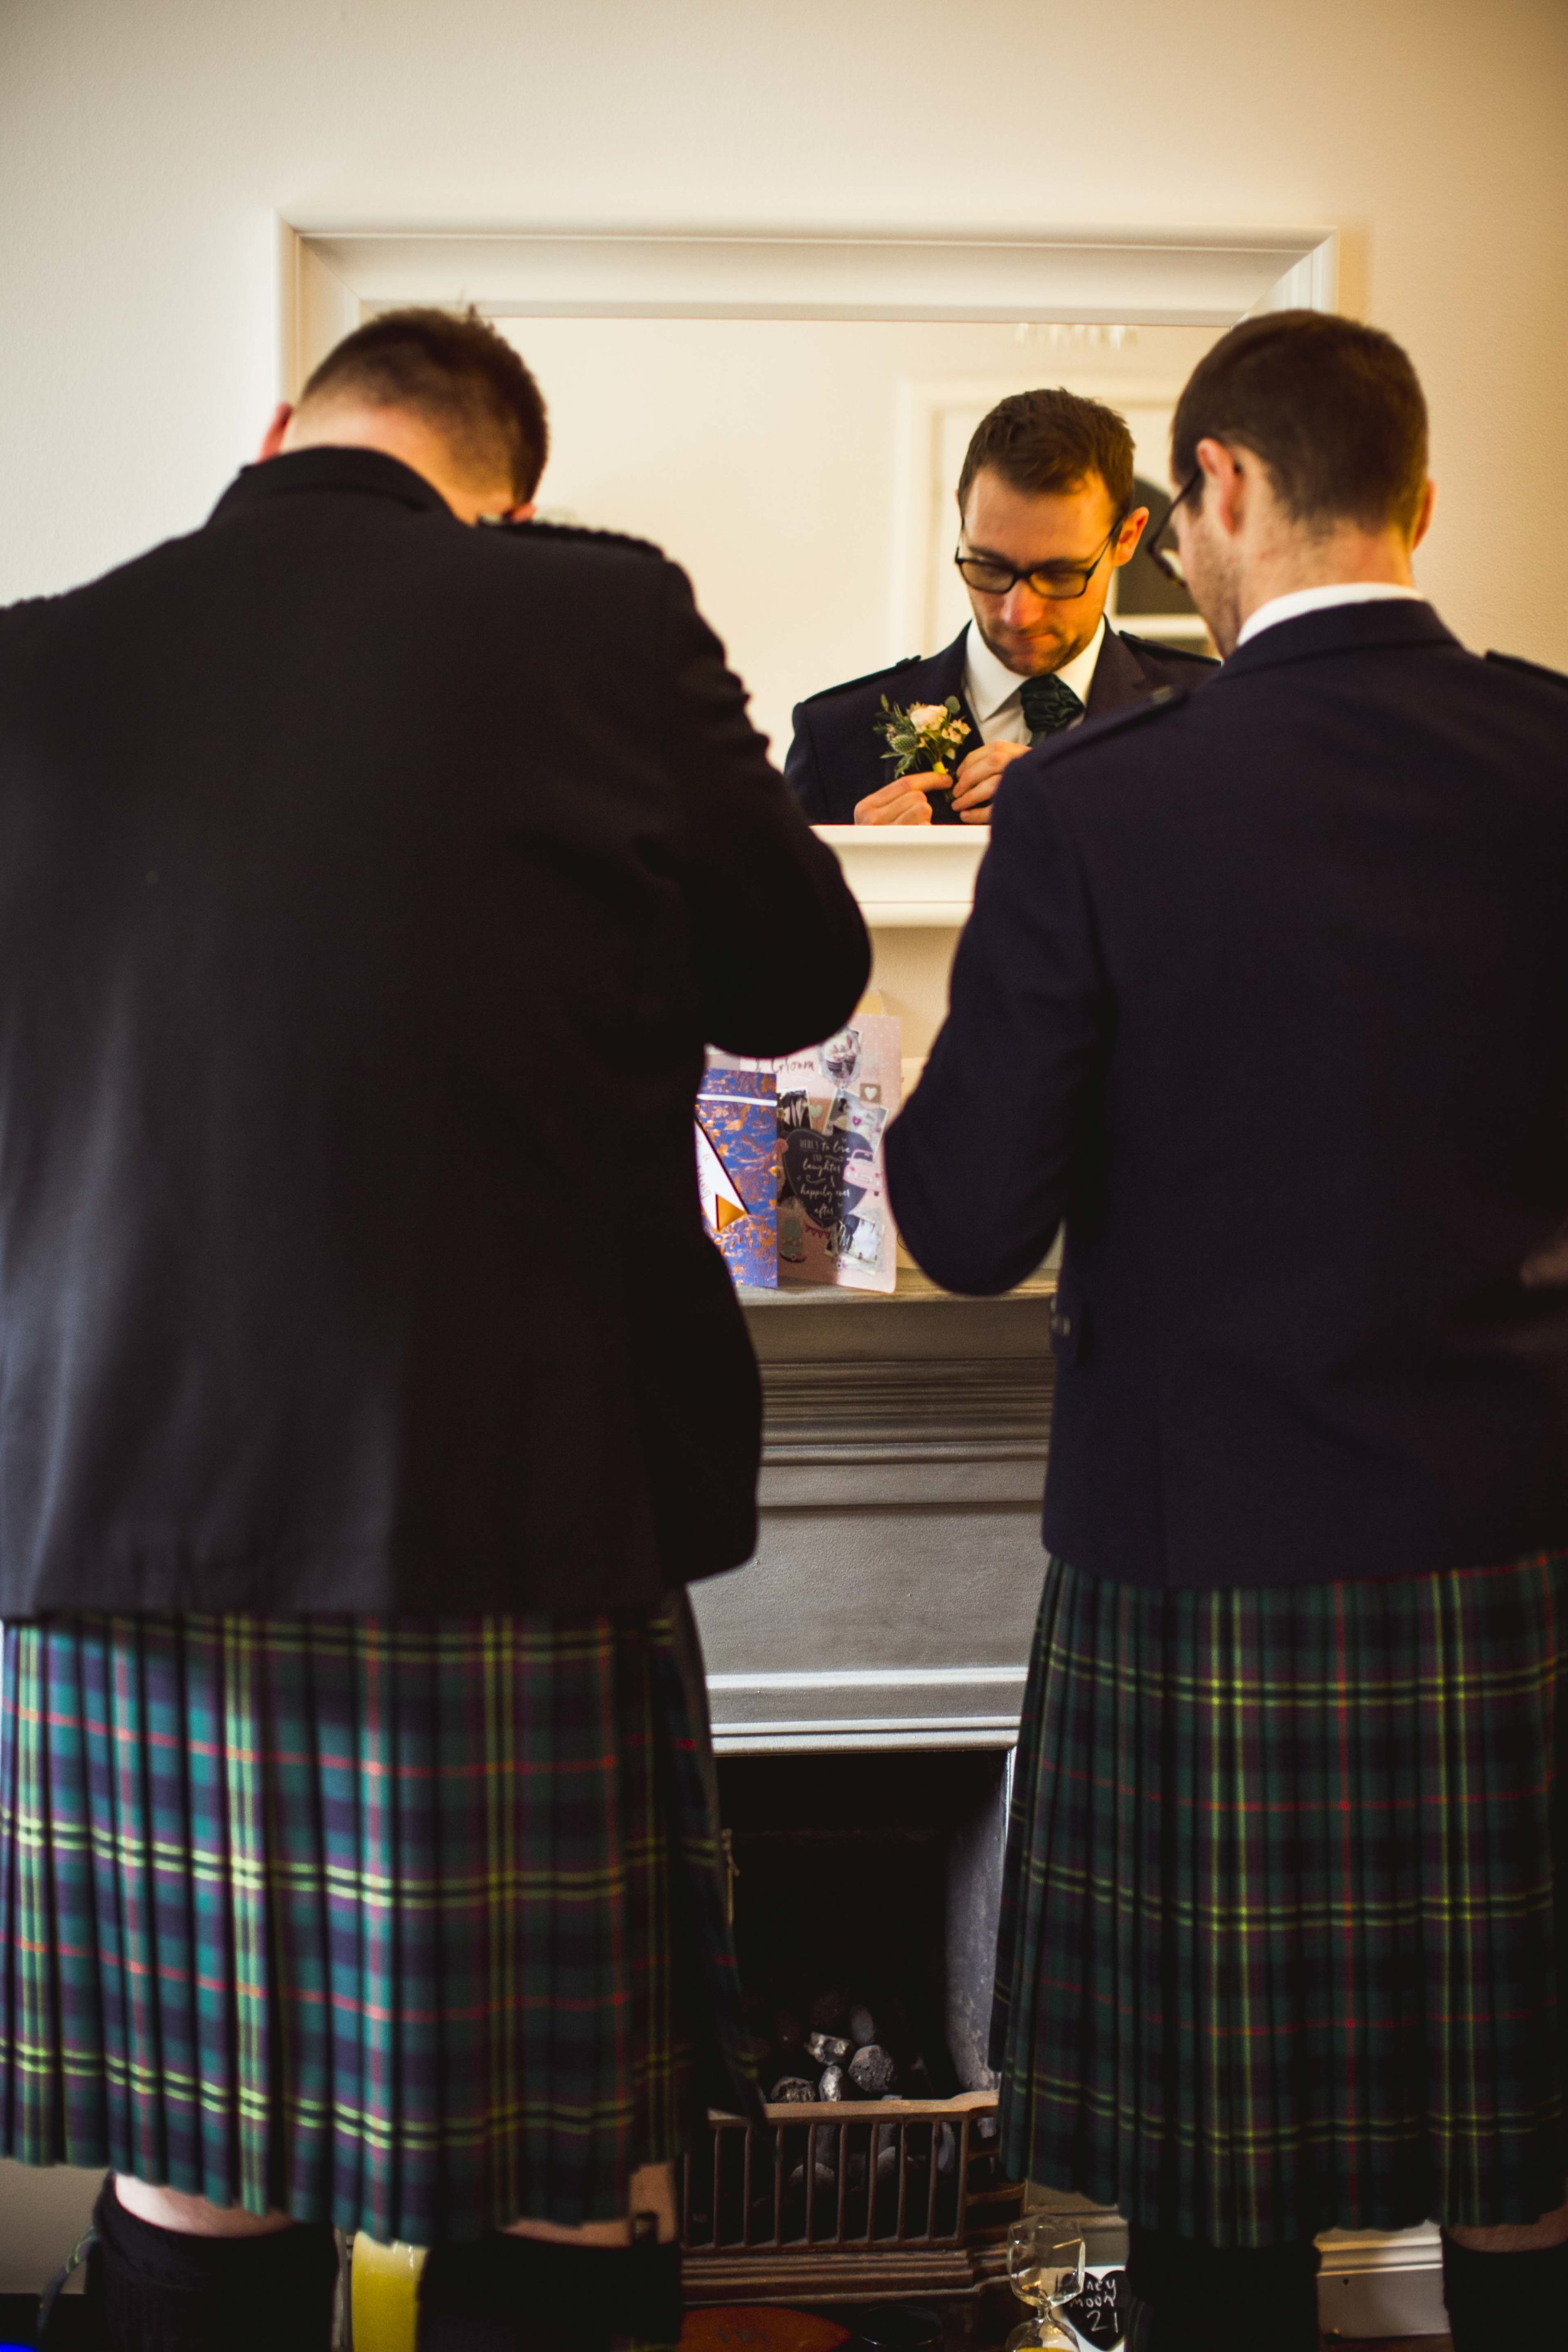 Sophie & Graeme Wedding Nov 2018  014  web.JPG